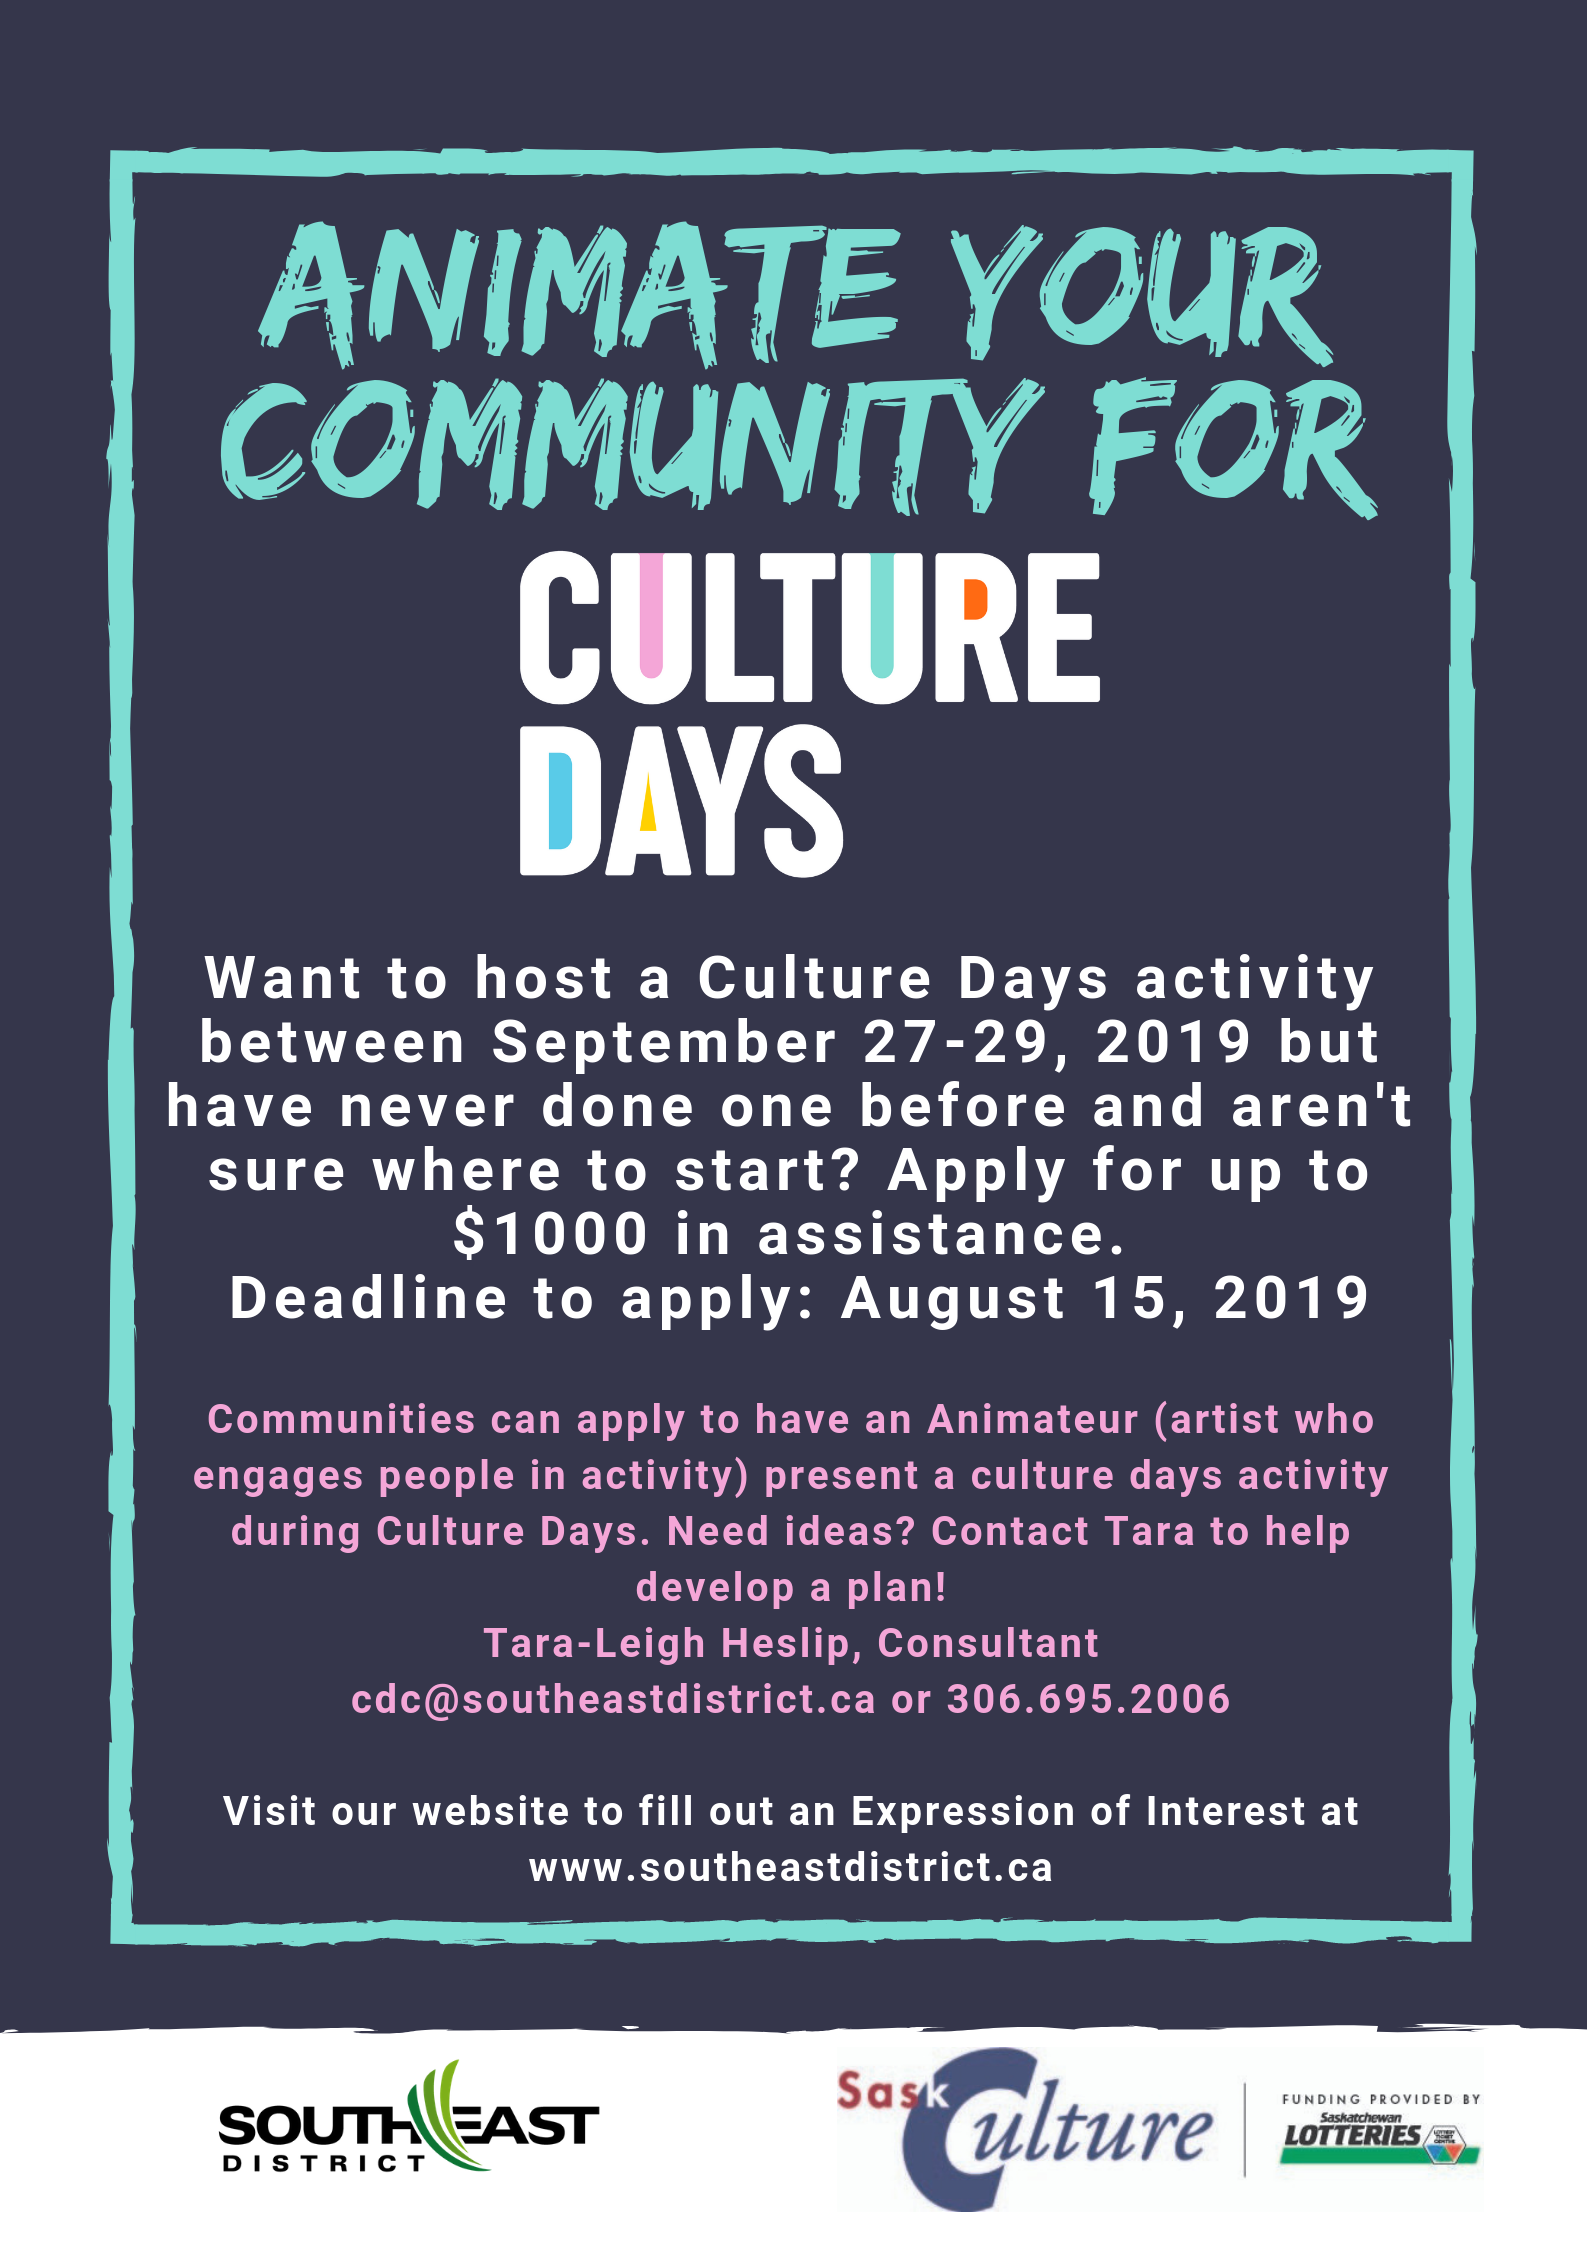 Animate Your Community for Culture Days! - Image 1